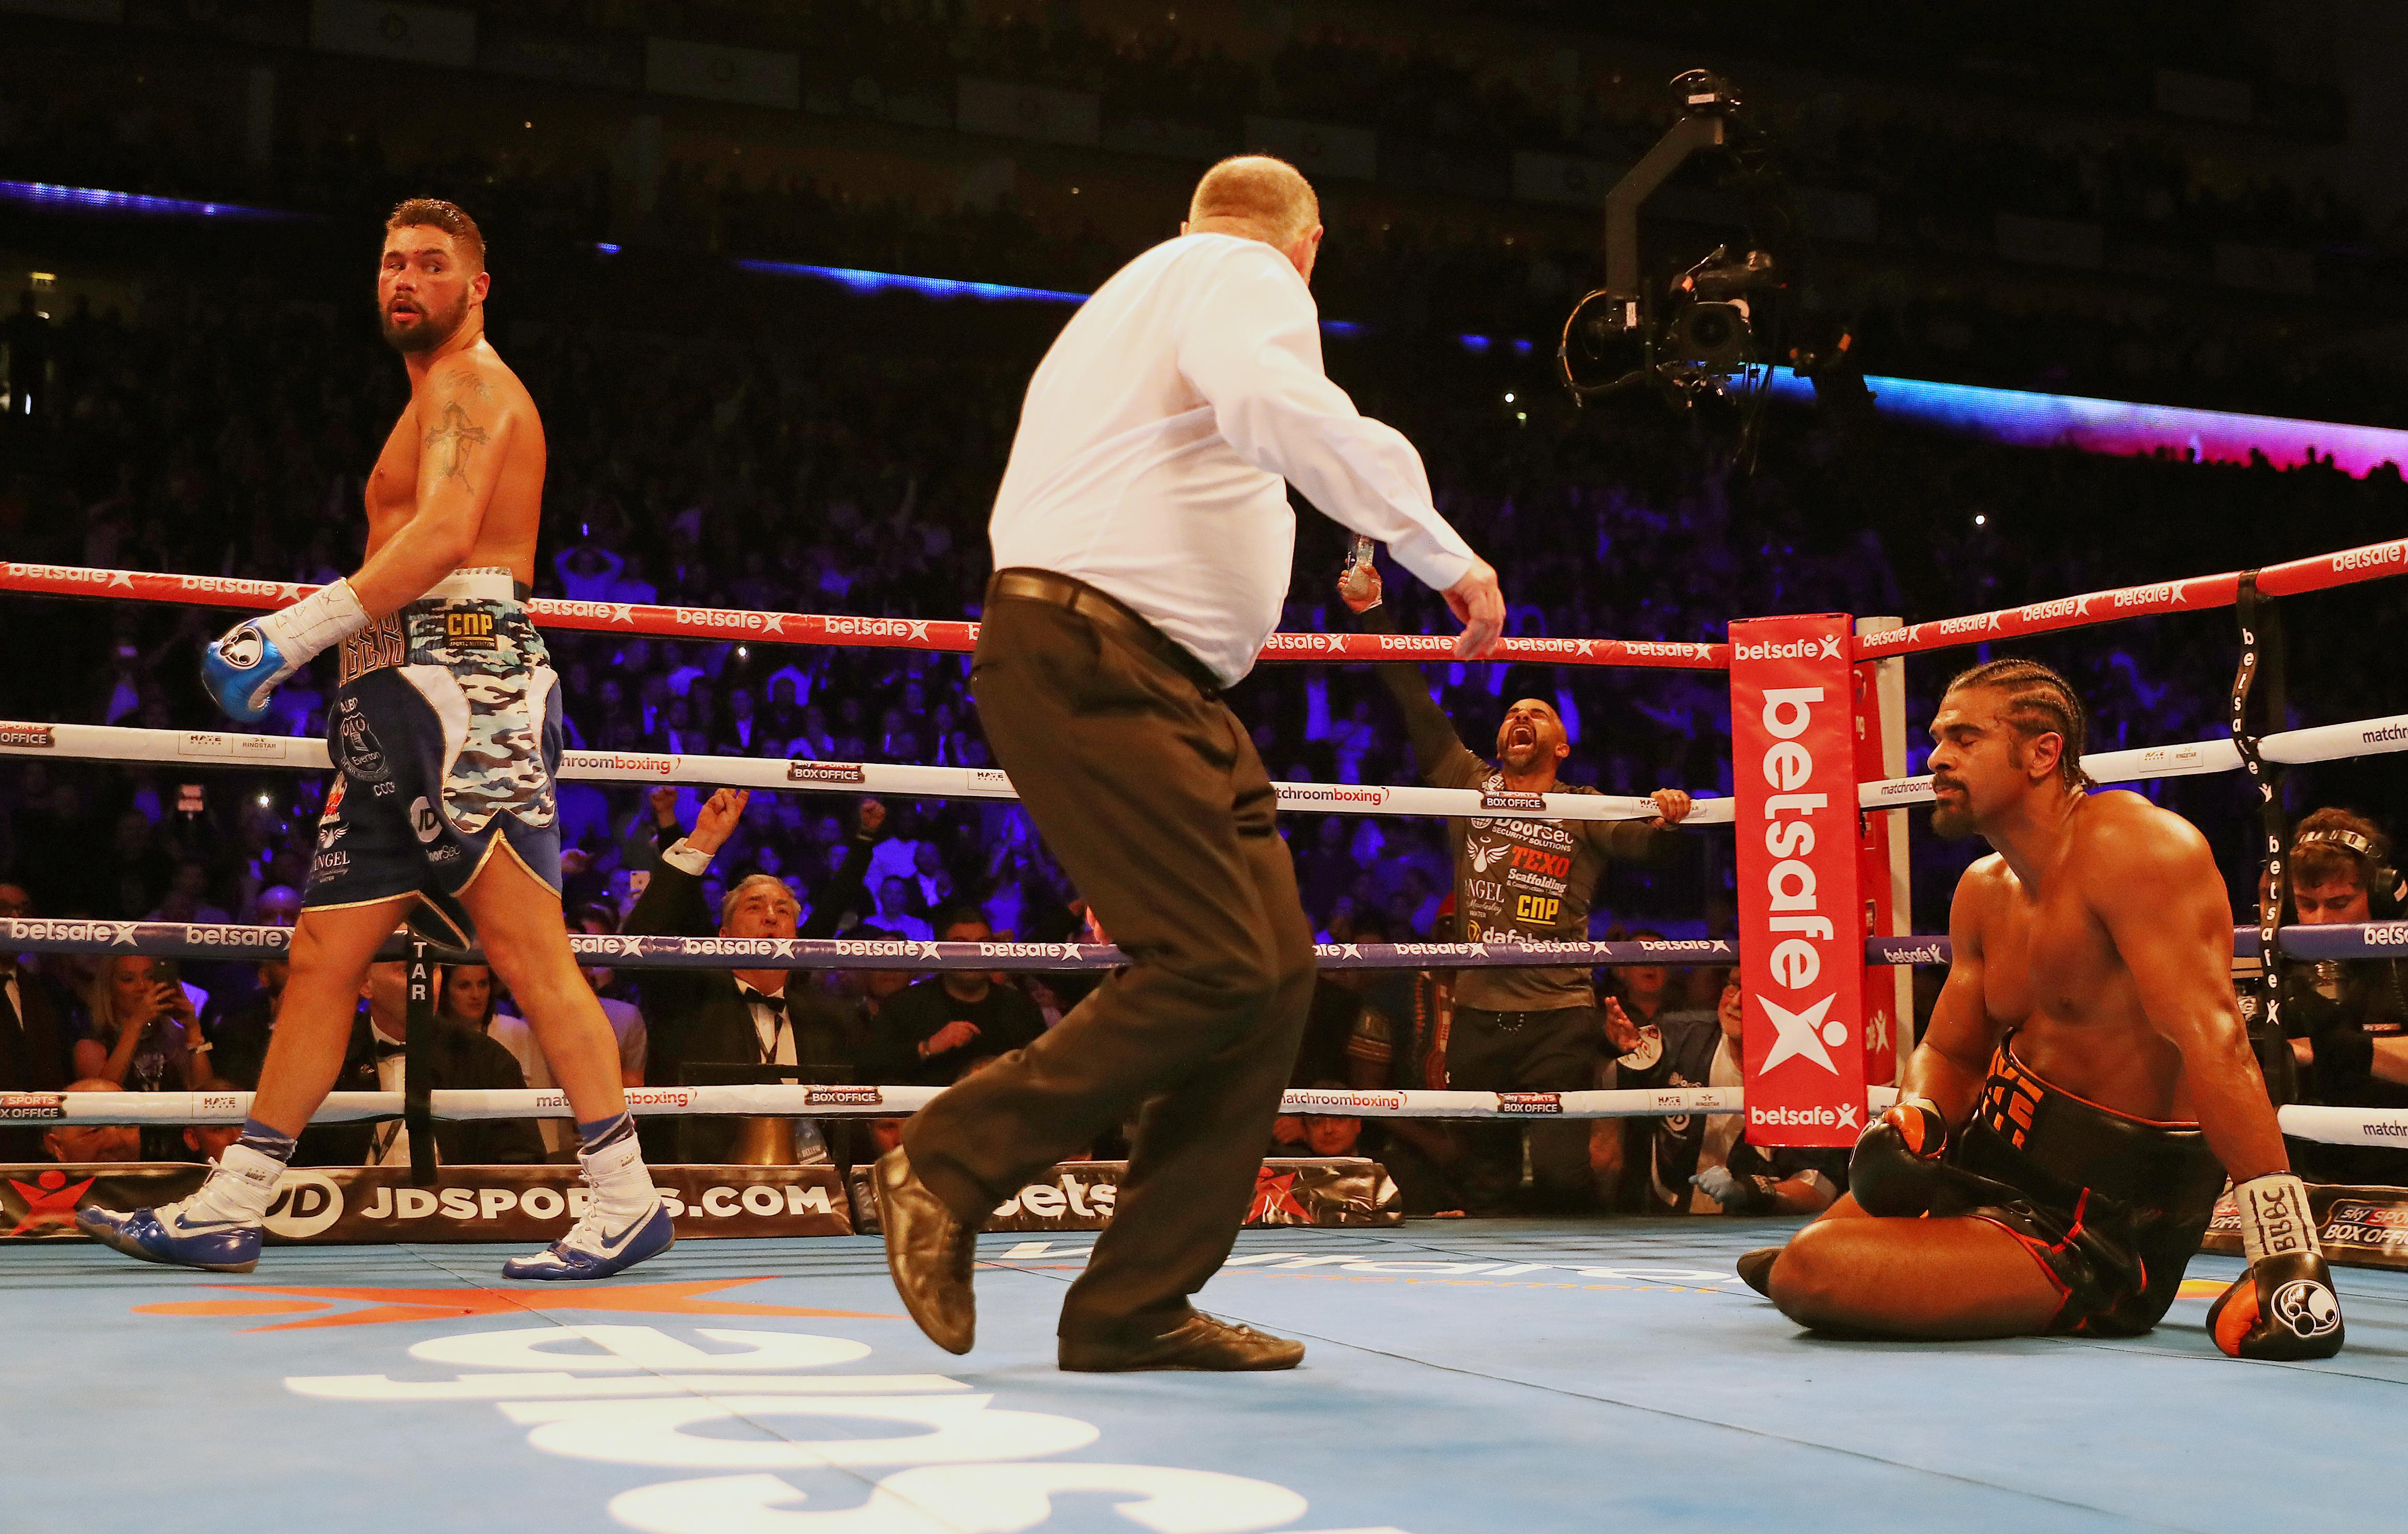 It was the first time in 13 years that Haye had suffered a KO defeat - having been stopped by Carl Thompson in 2004